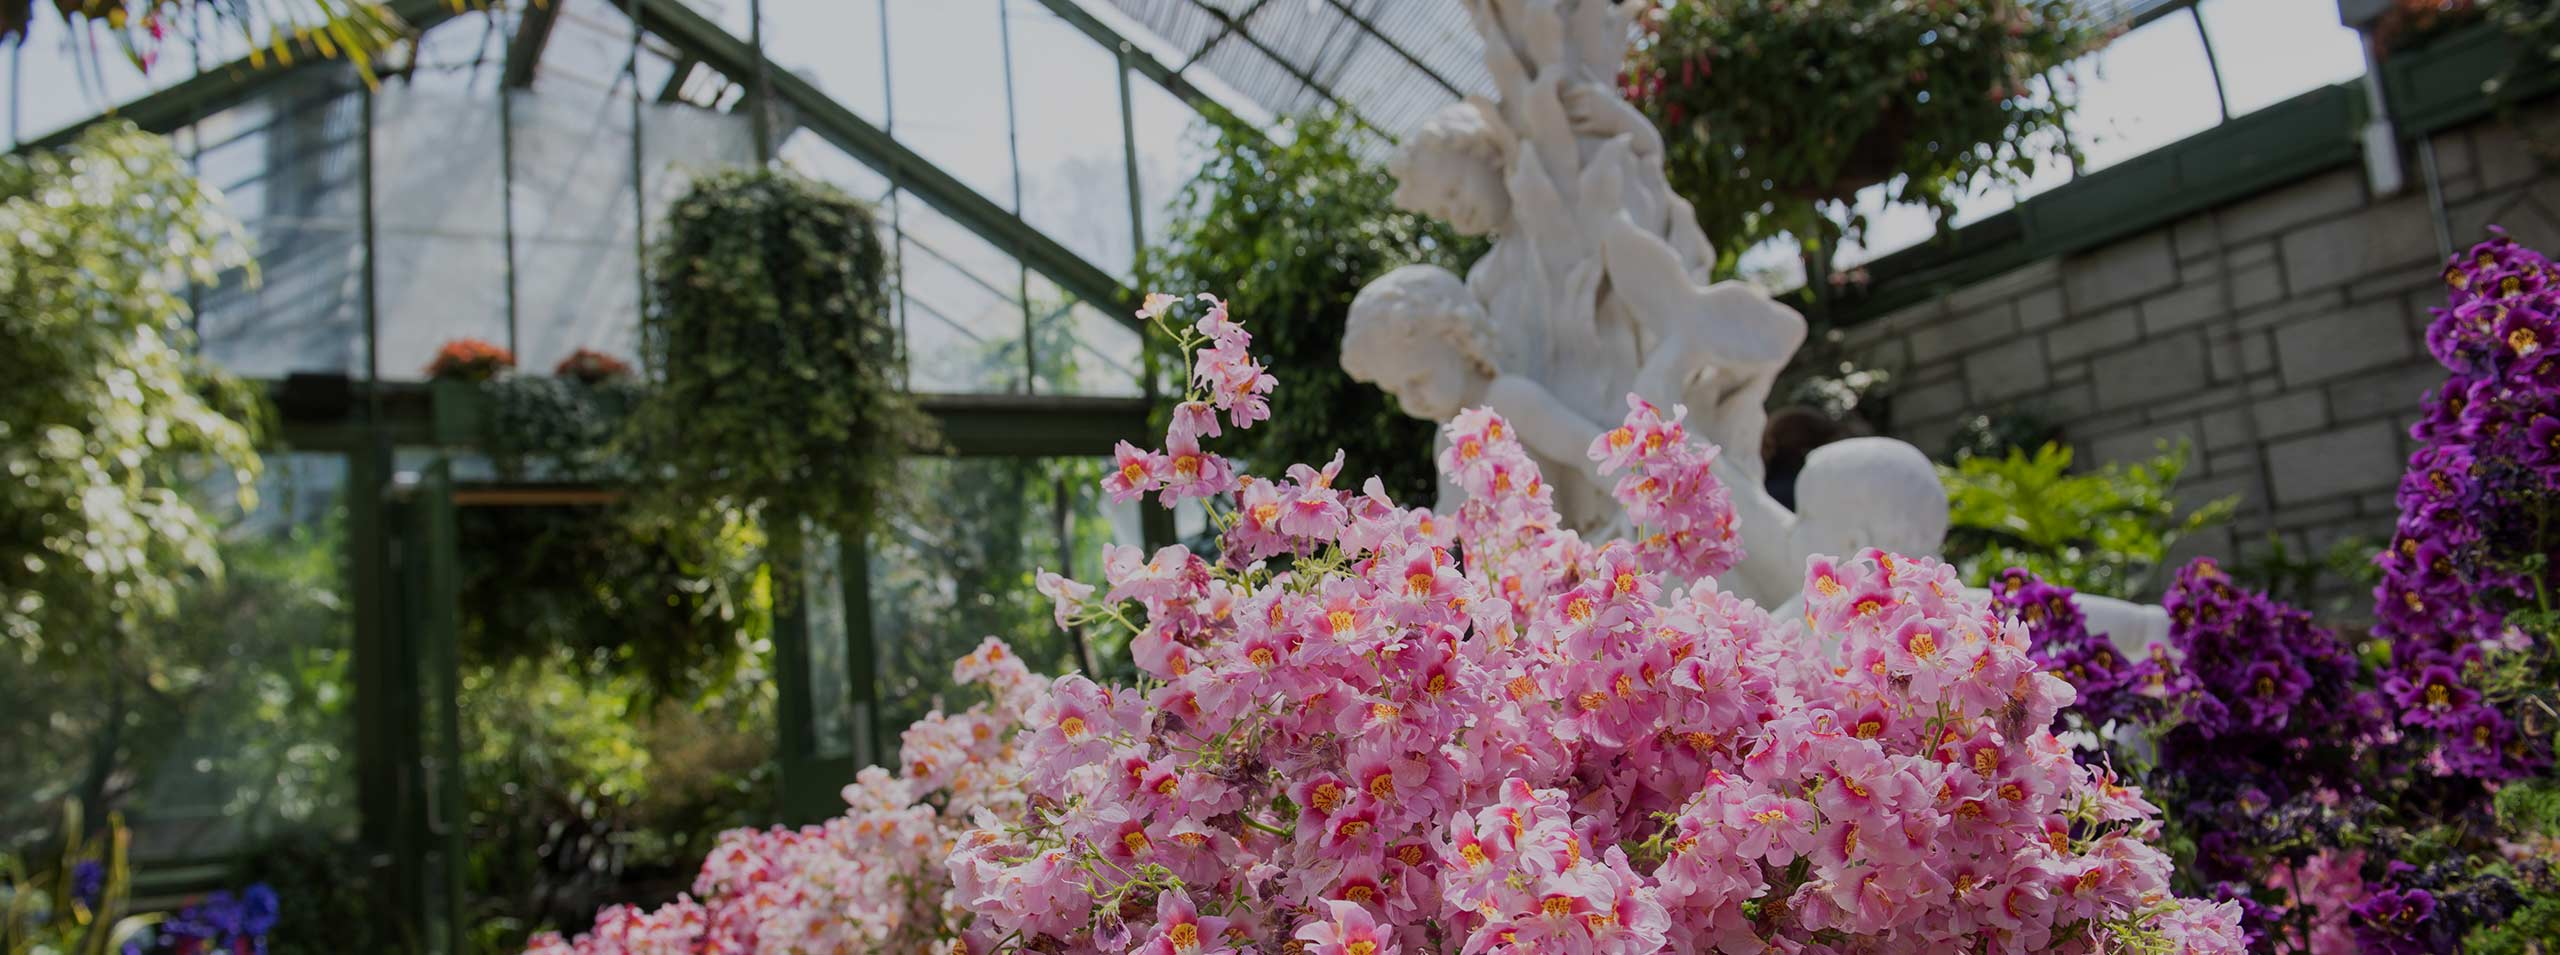 Escape to a Tropical Paradise with the Annual Spring Display